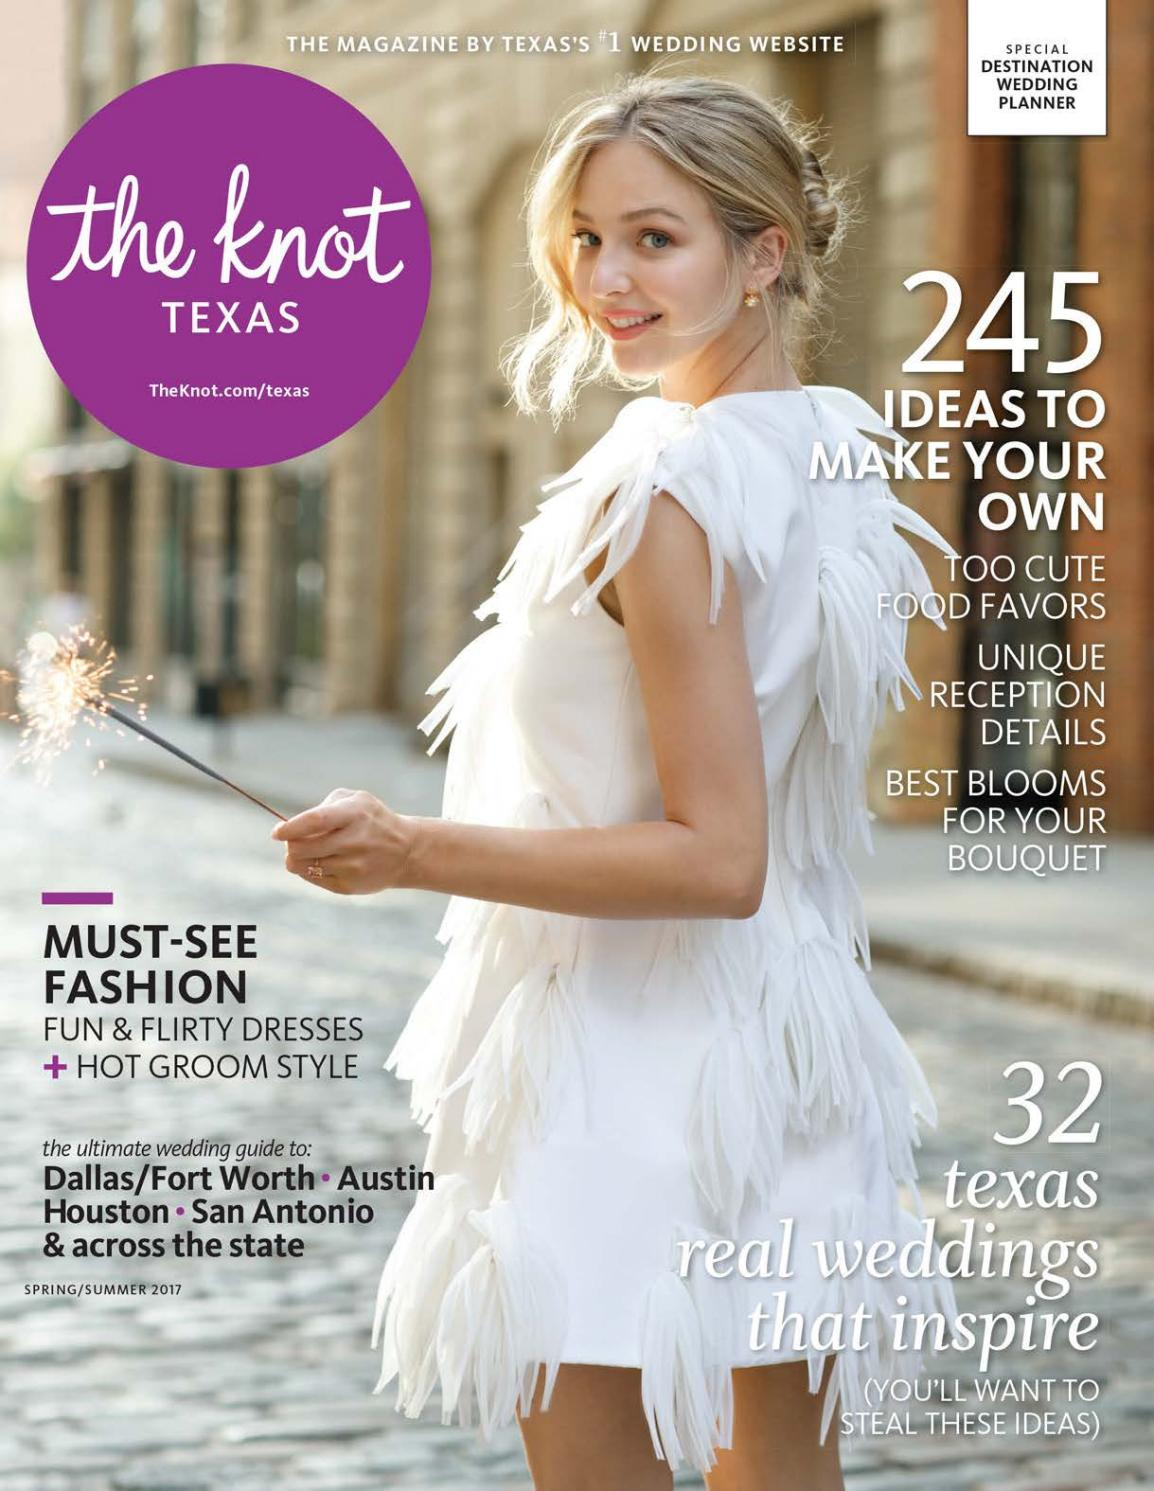 523f6675a5ef The Knot Texas Spring/Summer 2017 by The Knot Texas - issuu